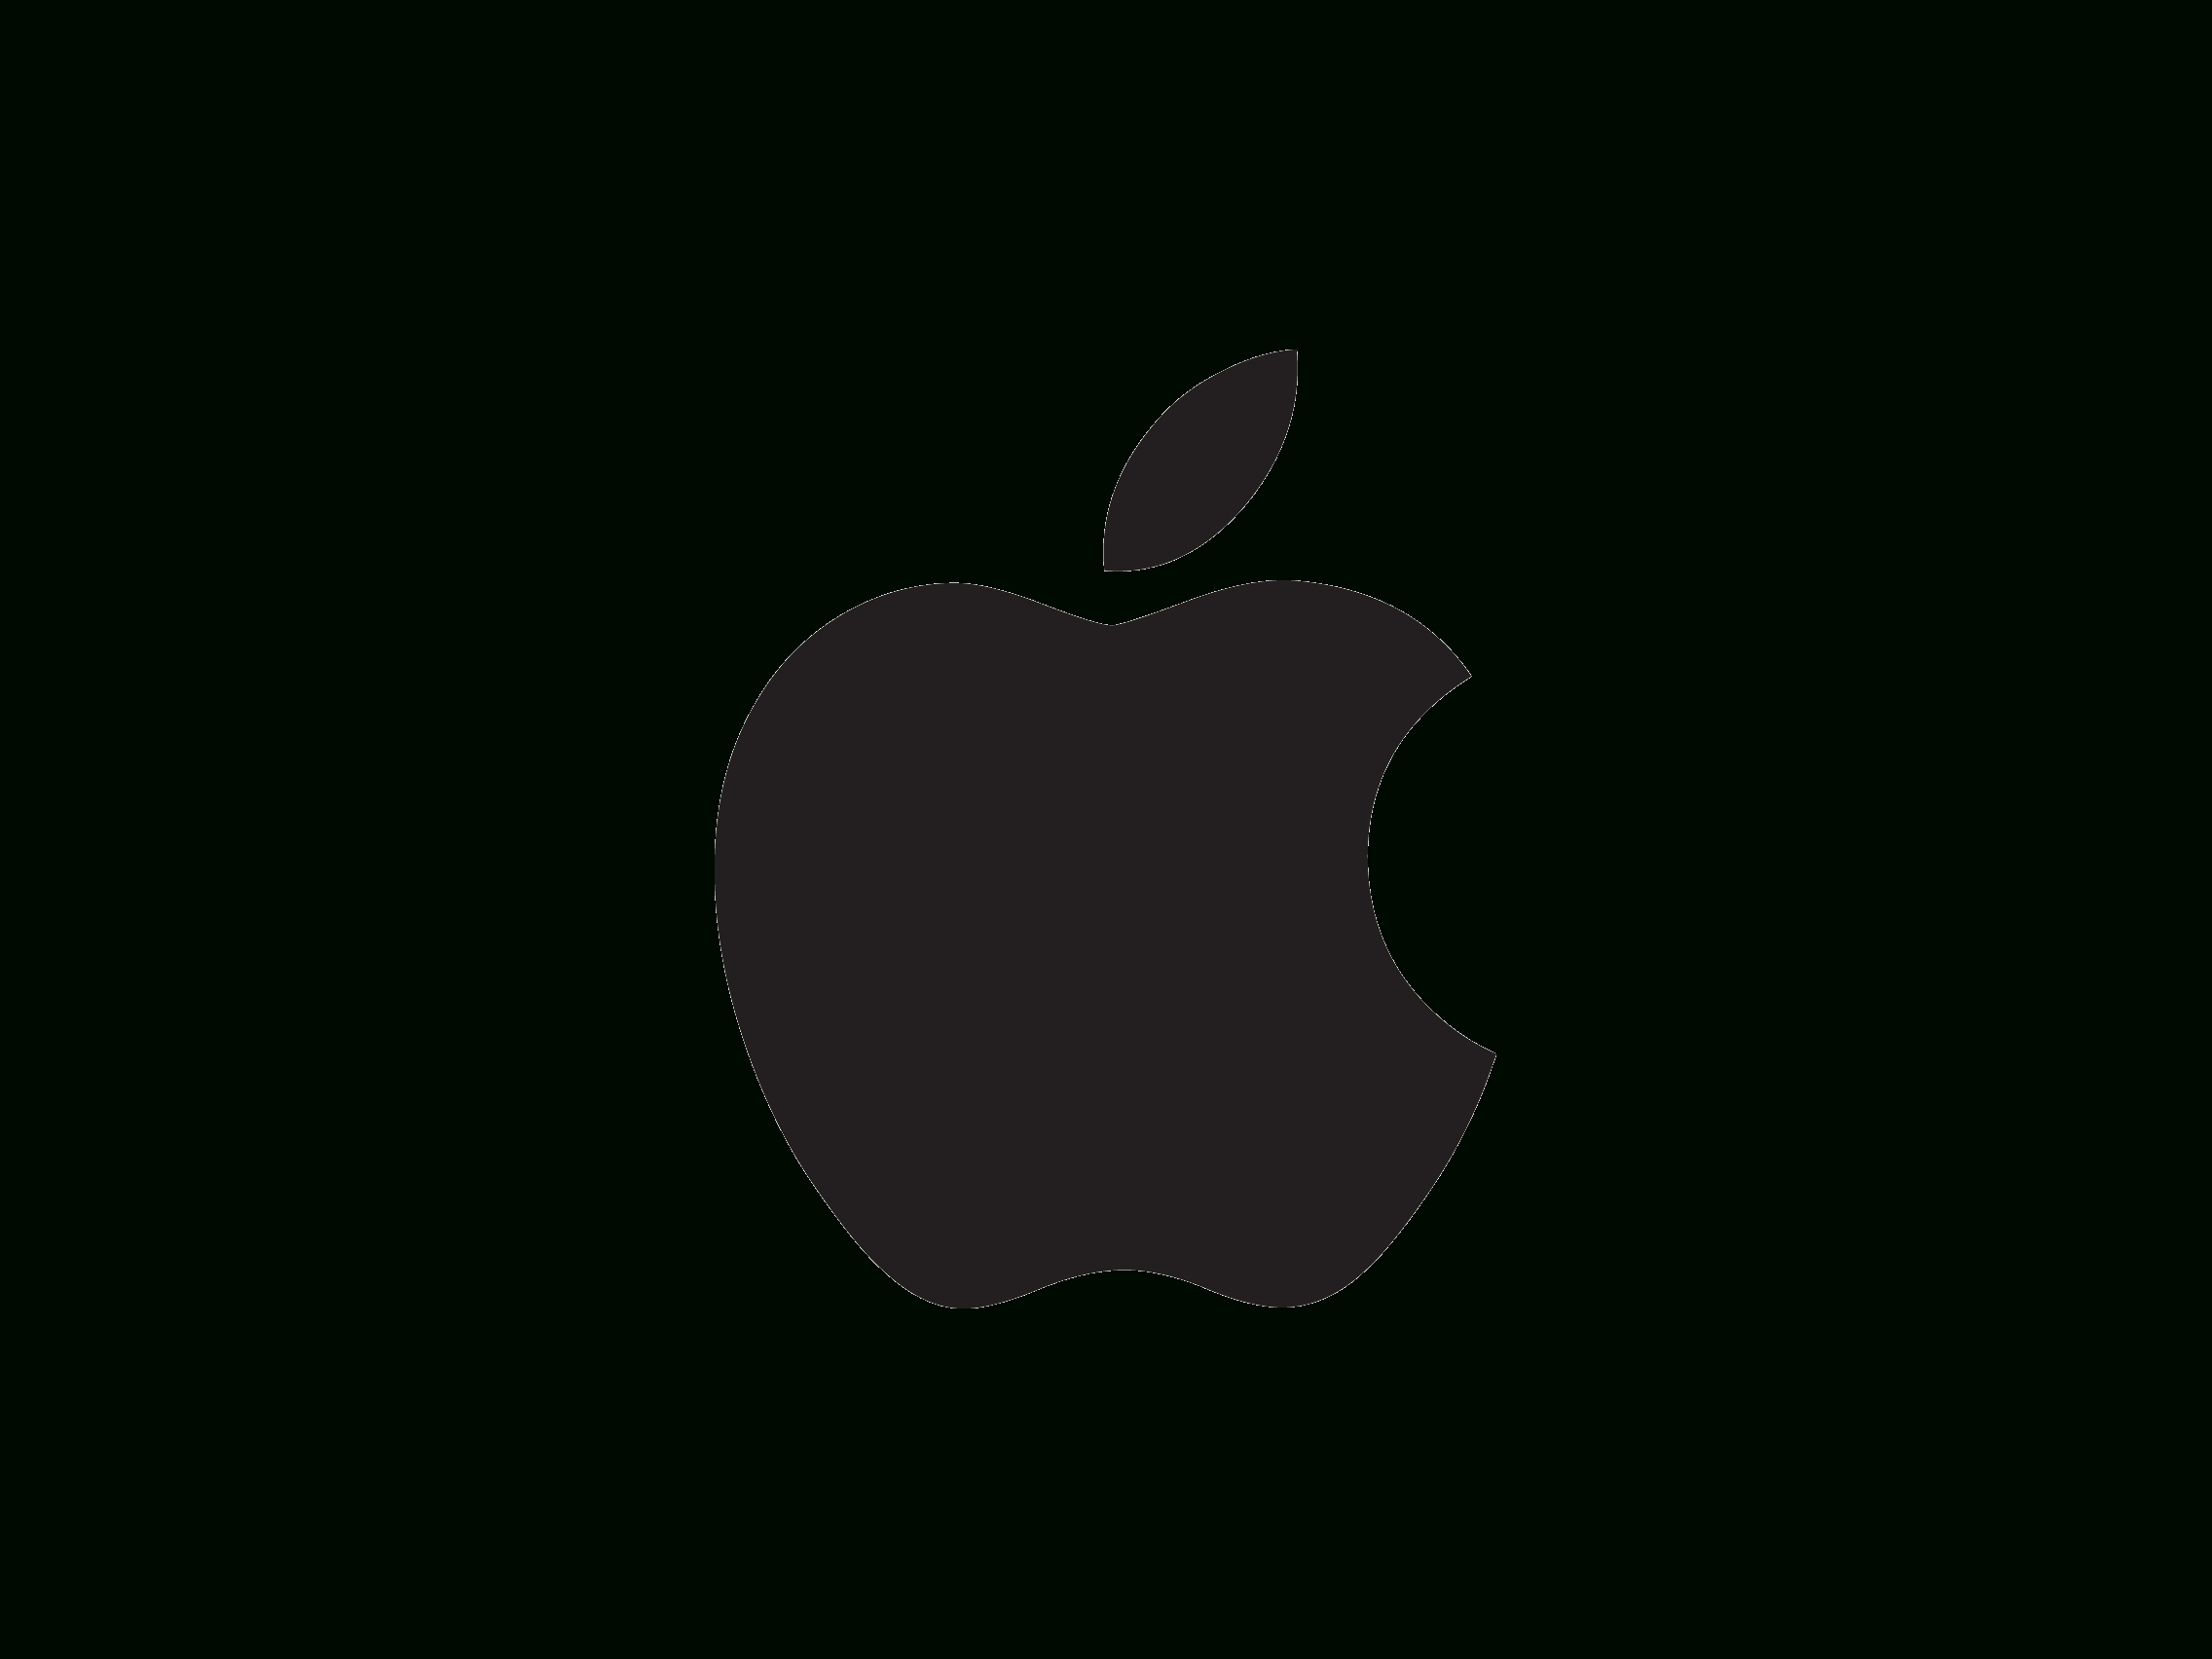 apple logo png in high resolution | web icons png